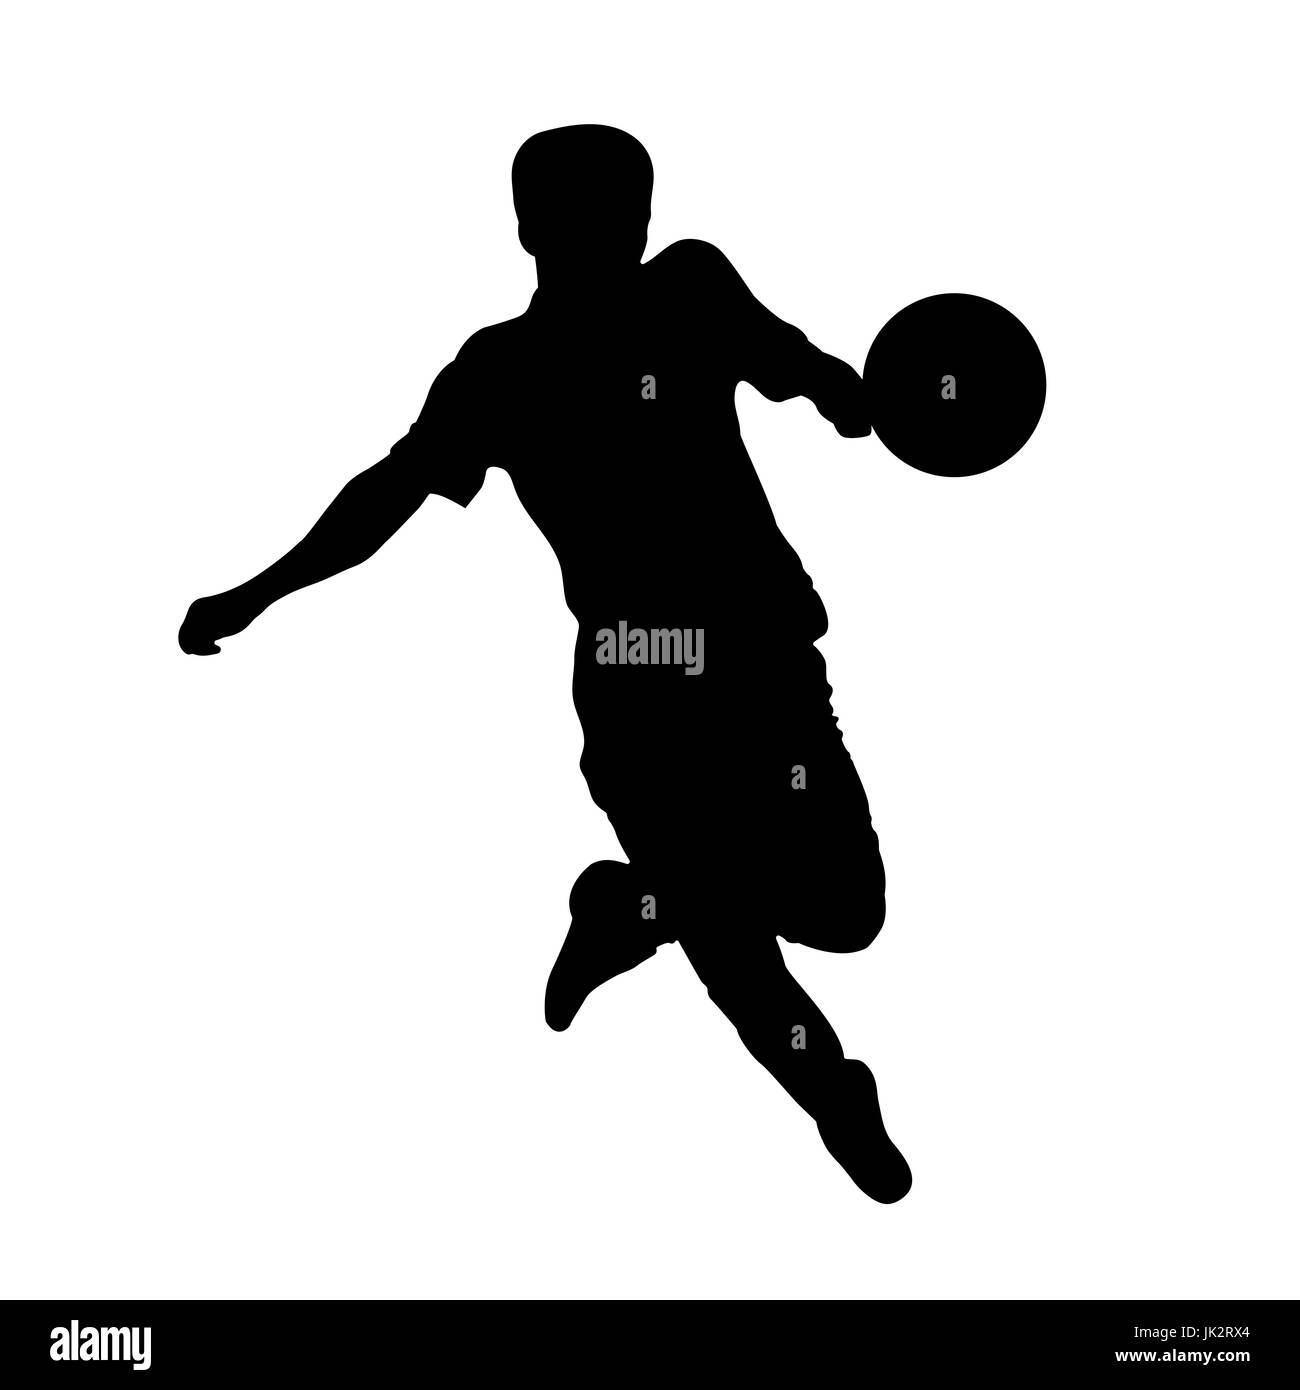 Footballer silhouette. Black football player outline with a ball, running and scoring goal, isolated on white background. Stock Vector